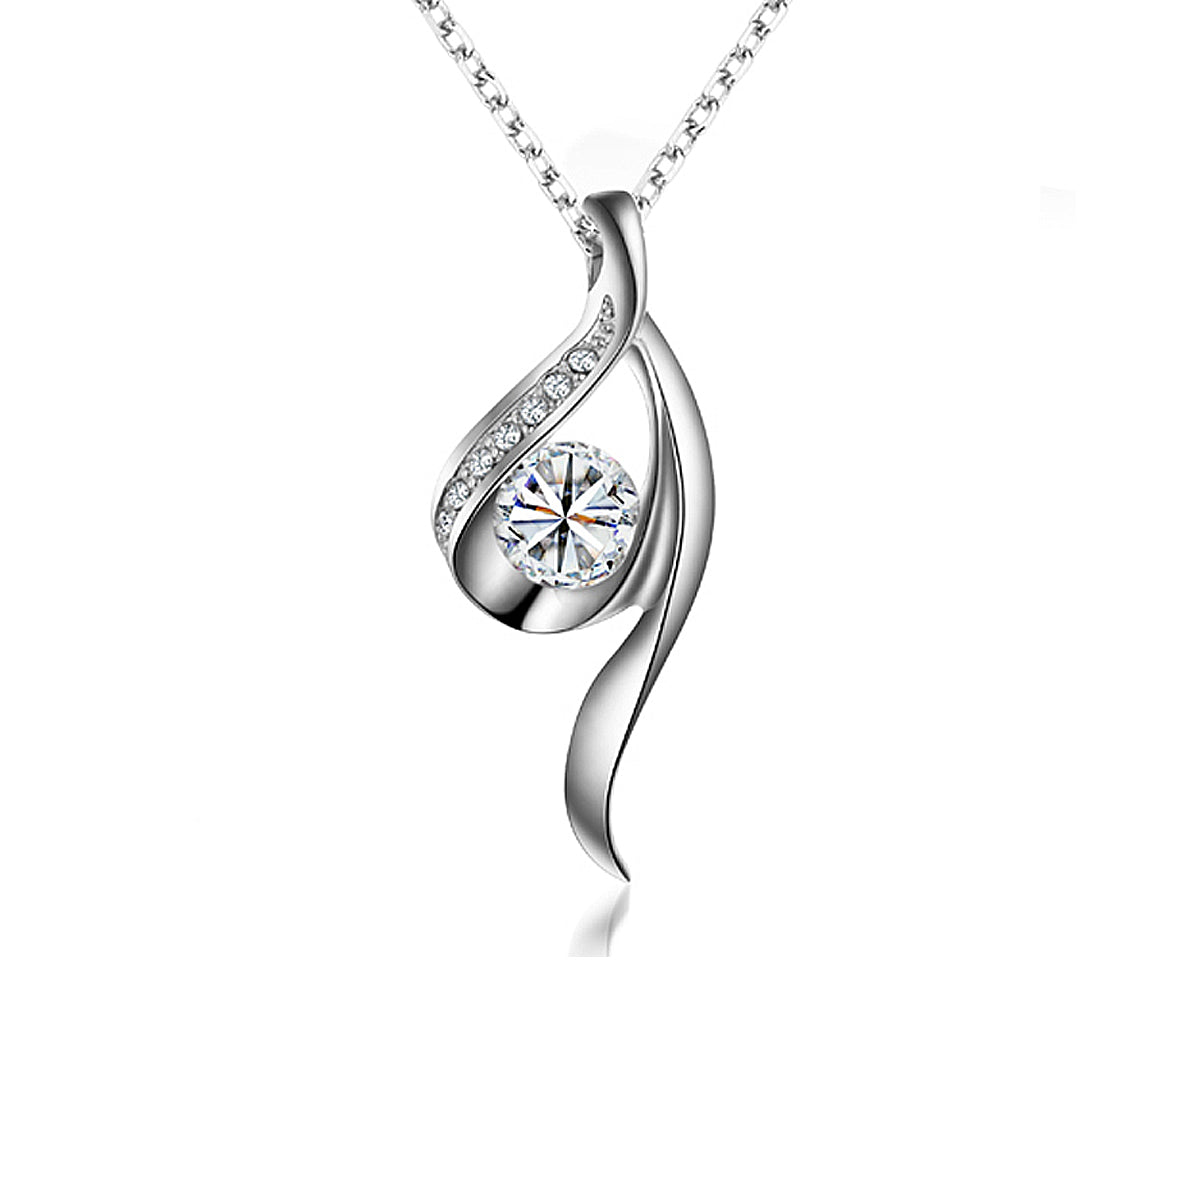 Wrapables True Elegance Crystal Necklace